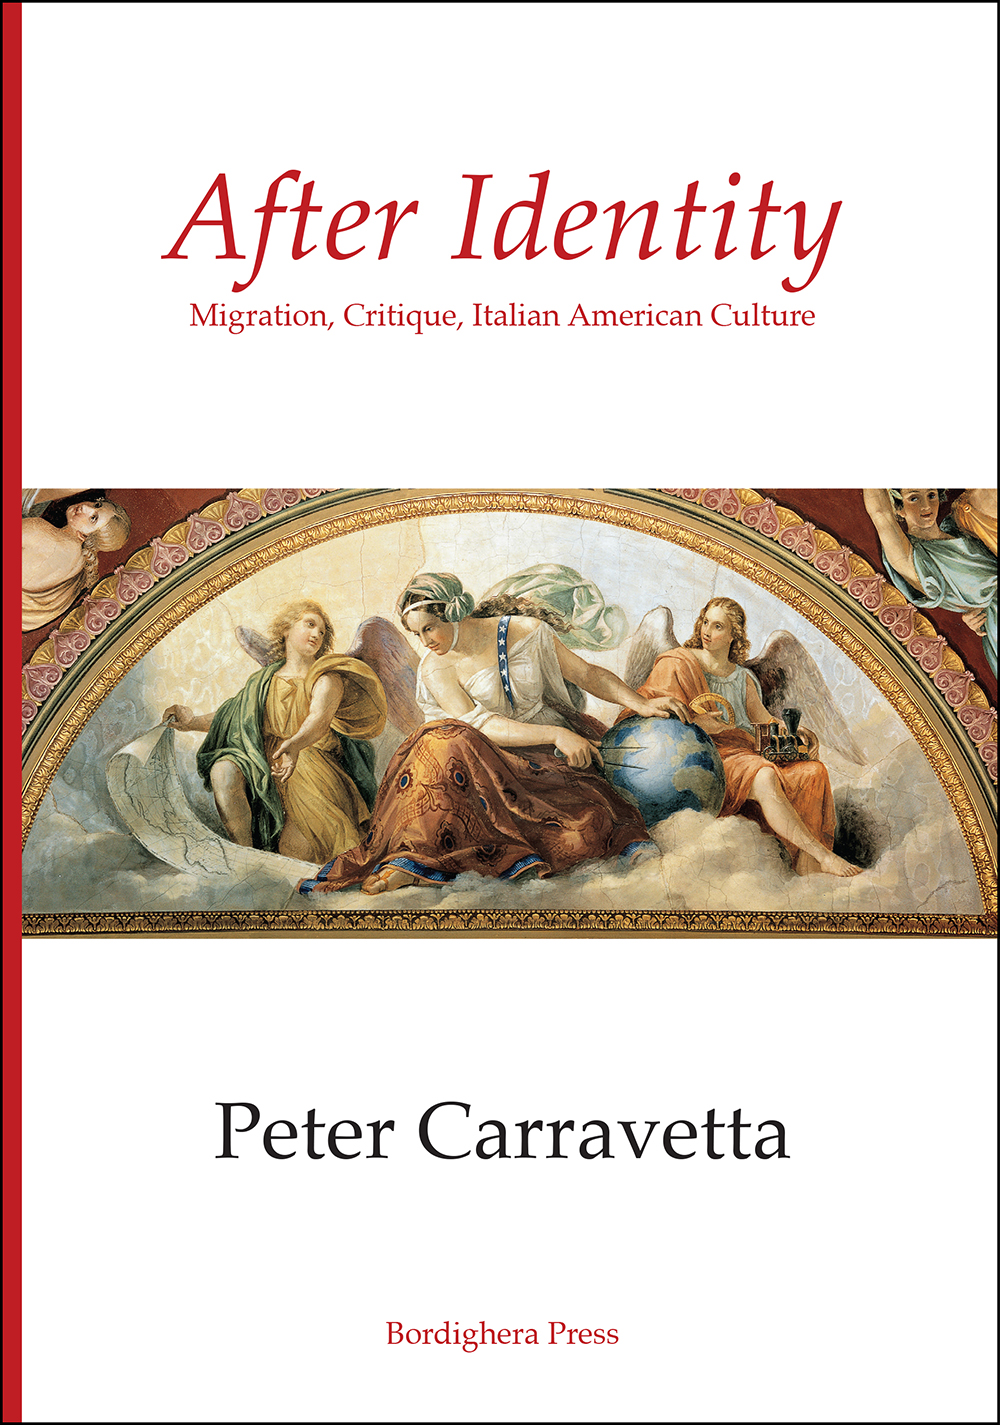 After Identity: Migration, Critique, Italian American Culture